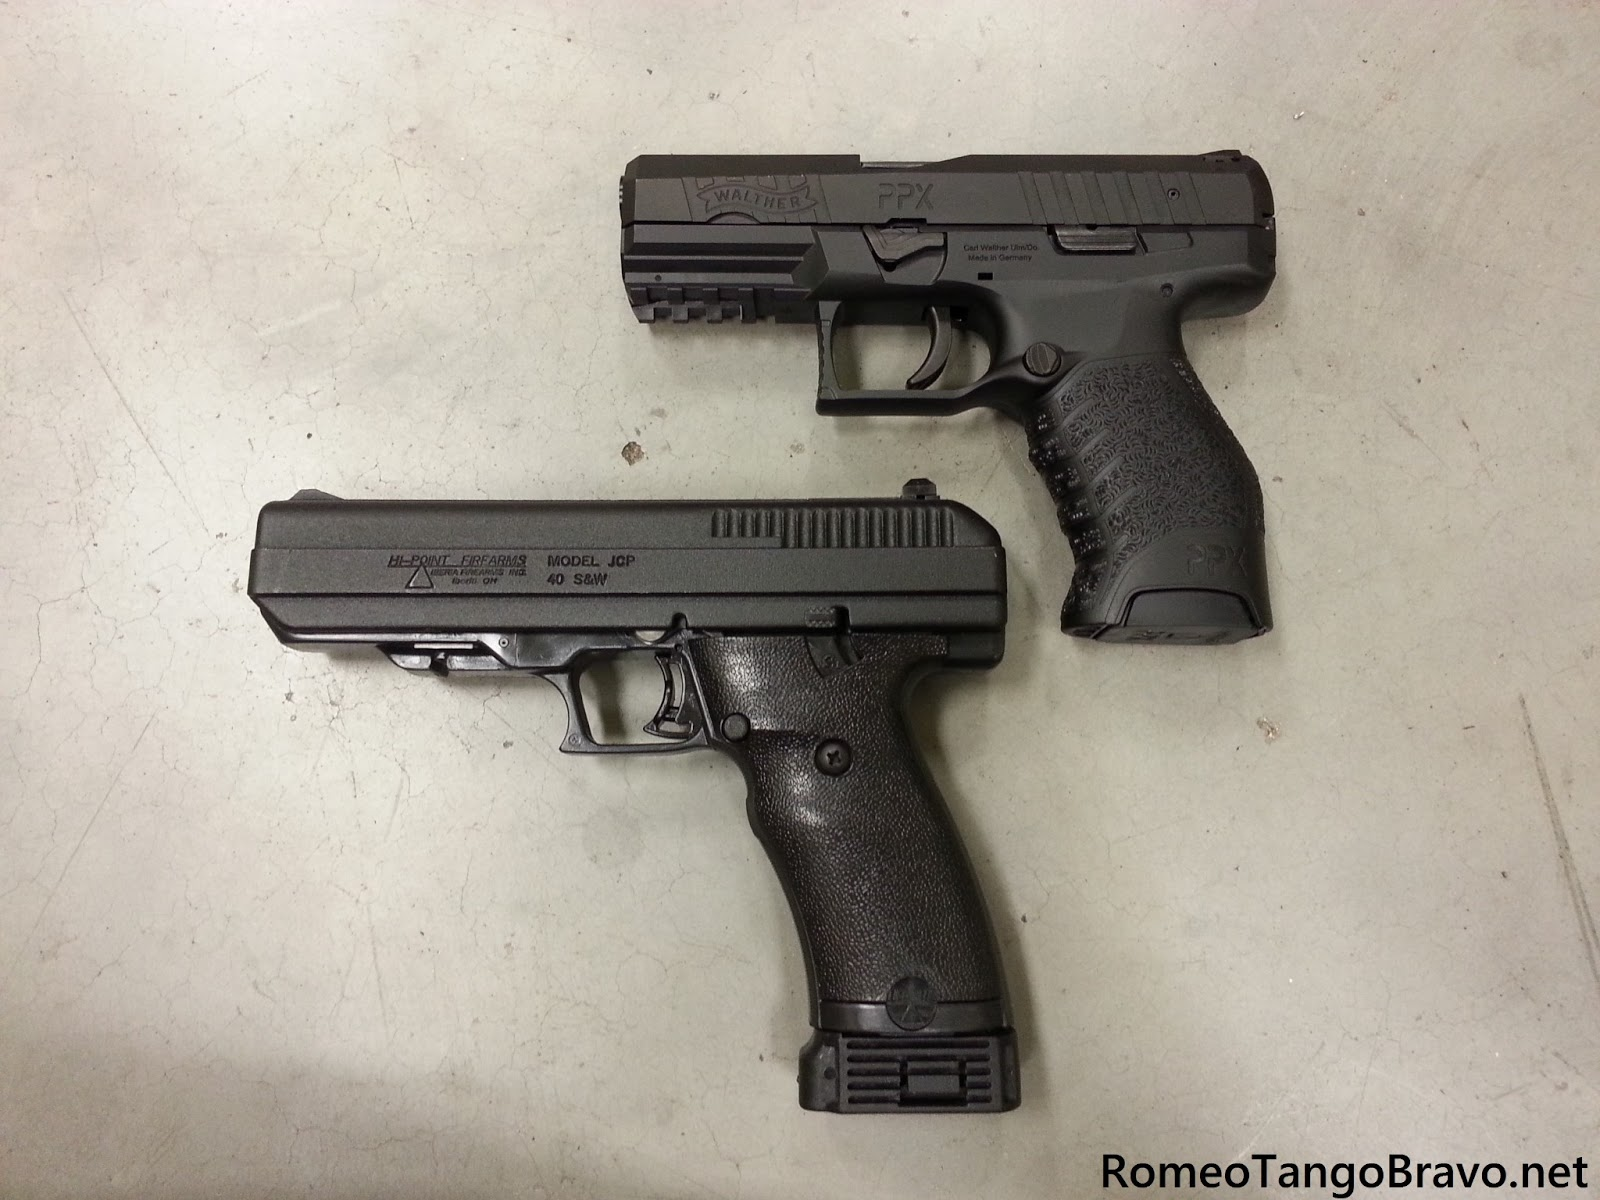 Romeotangobravo Walther Ppx Vs Hi Point Jcp Photo Comparison